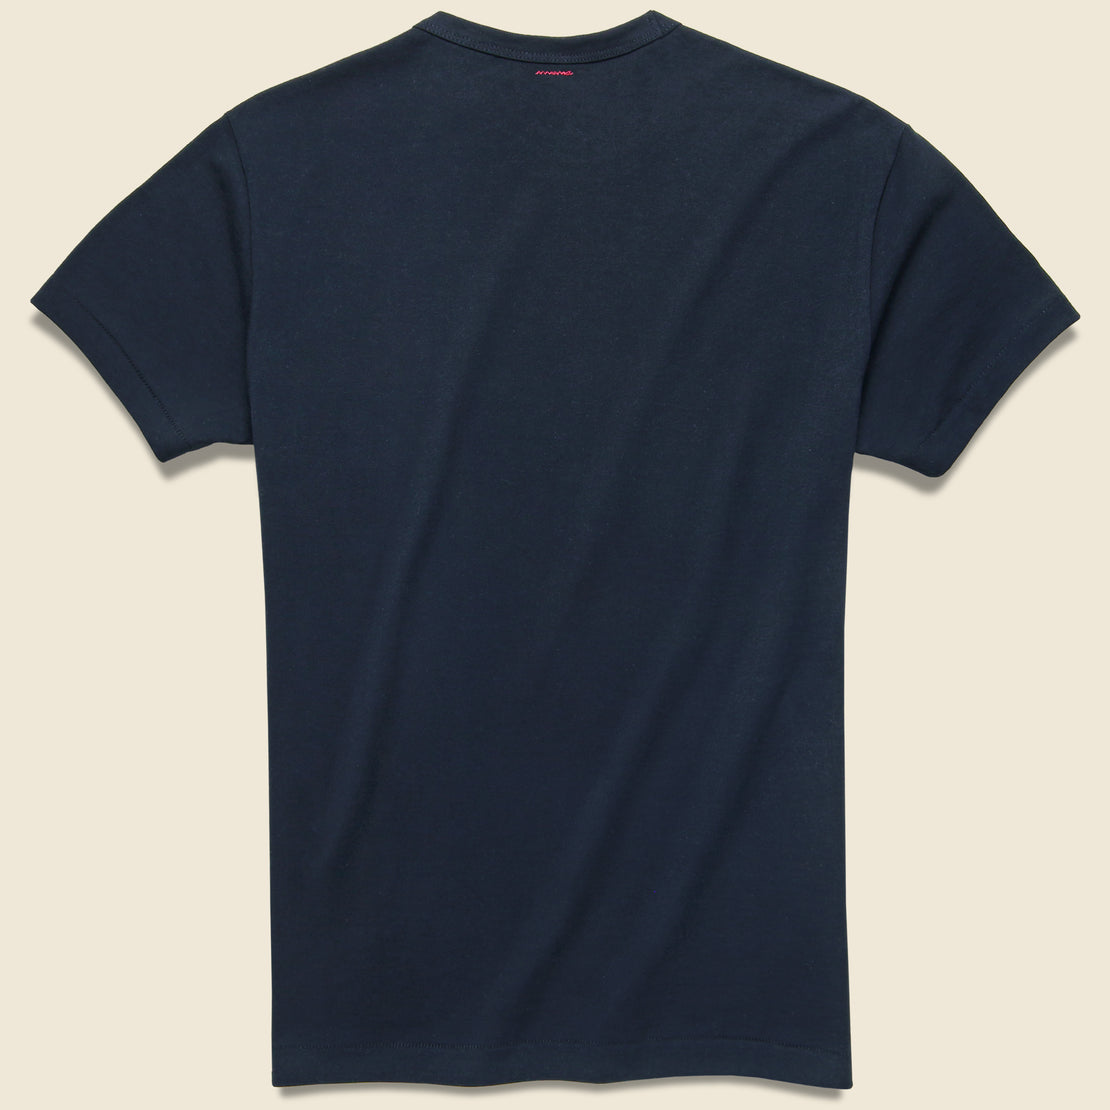 Todd Snyder + Champion - Stacked Champion Tee - Original Navy